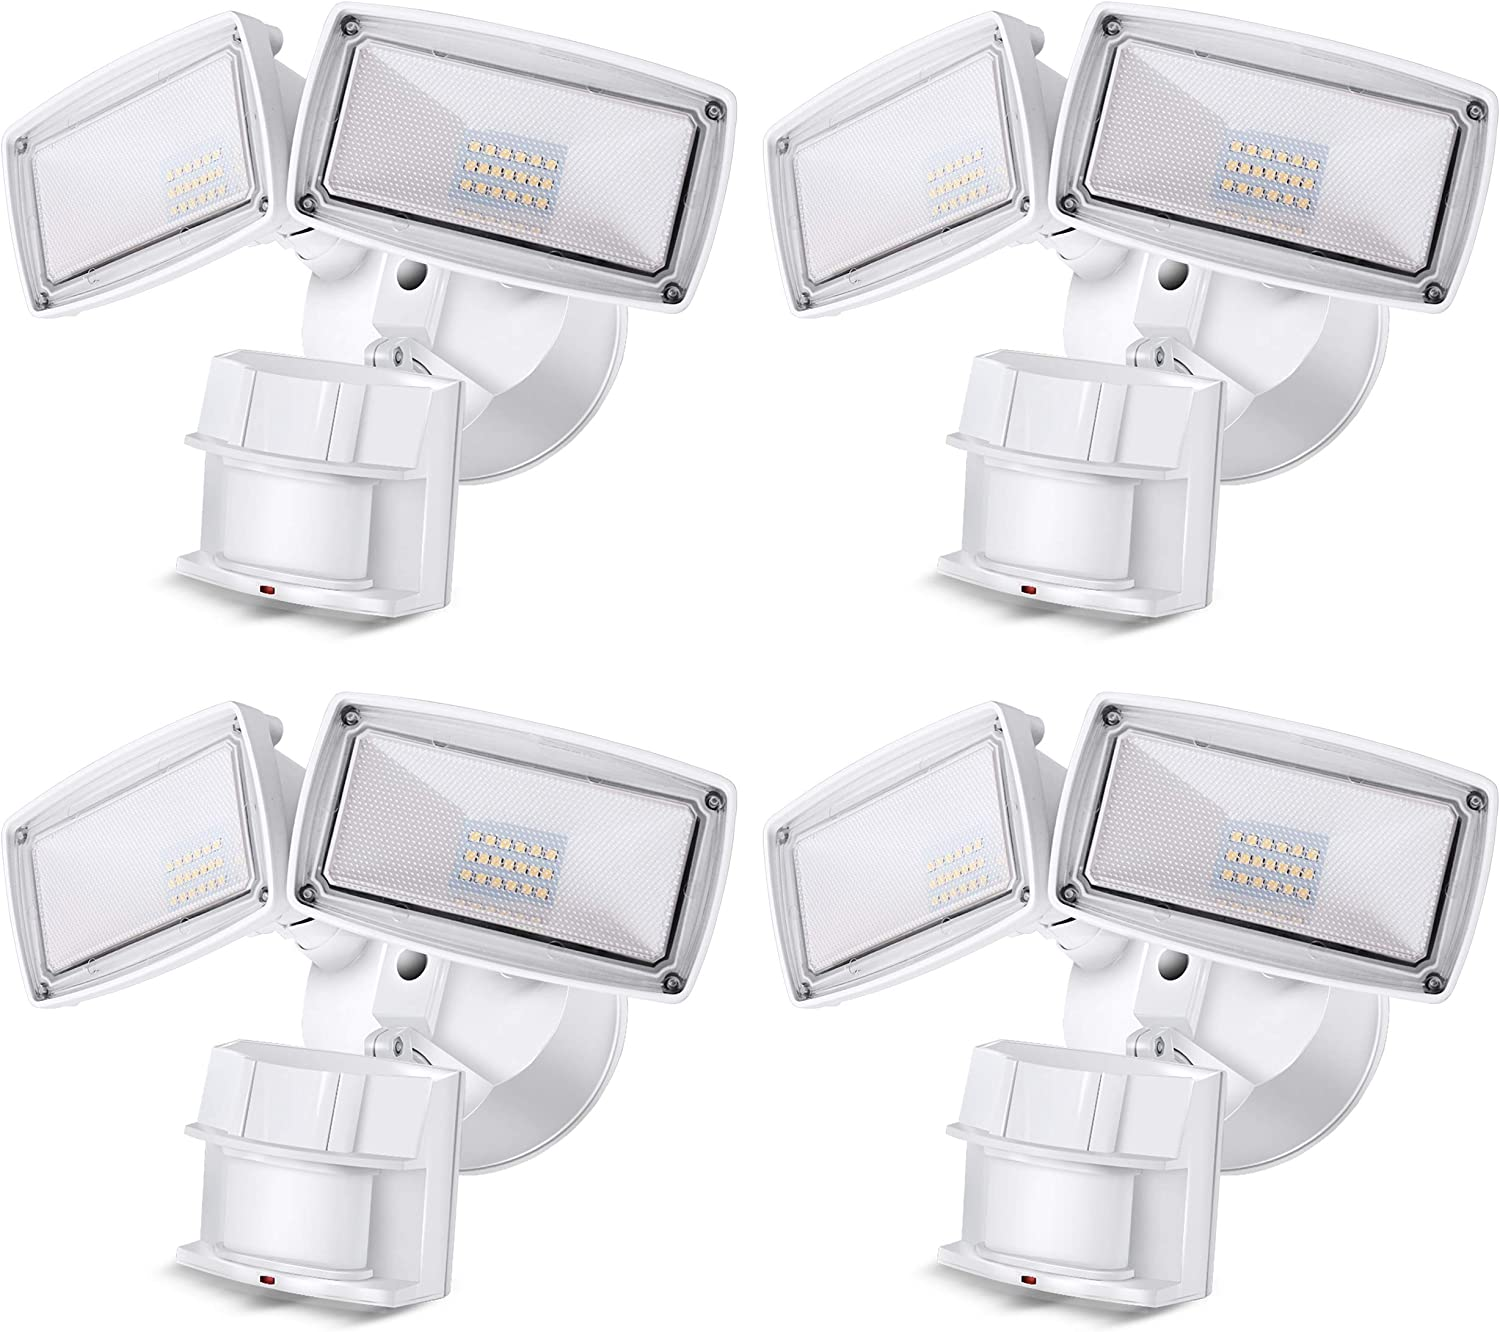 2 Pack LED Flood Lights And Motion Sensor 3000lm Waterproof Outdoor Security.